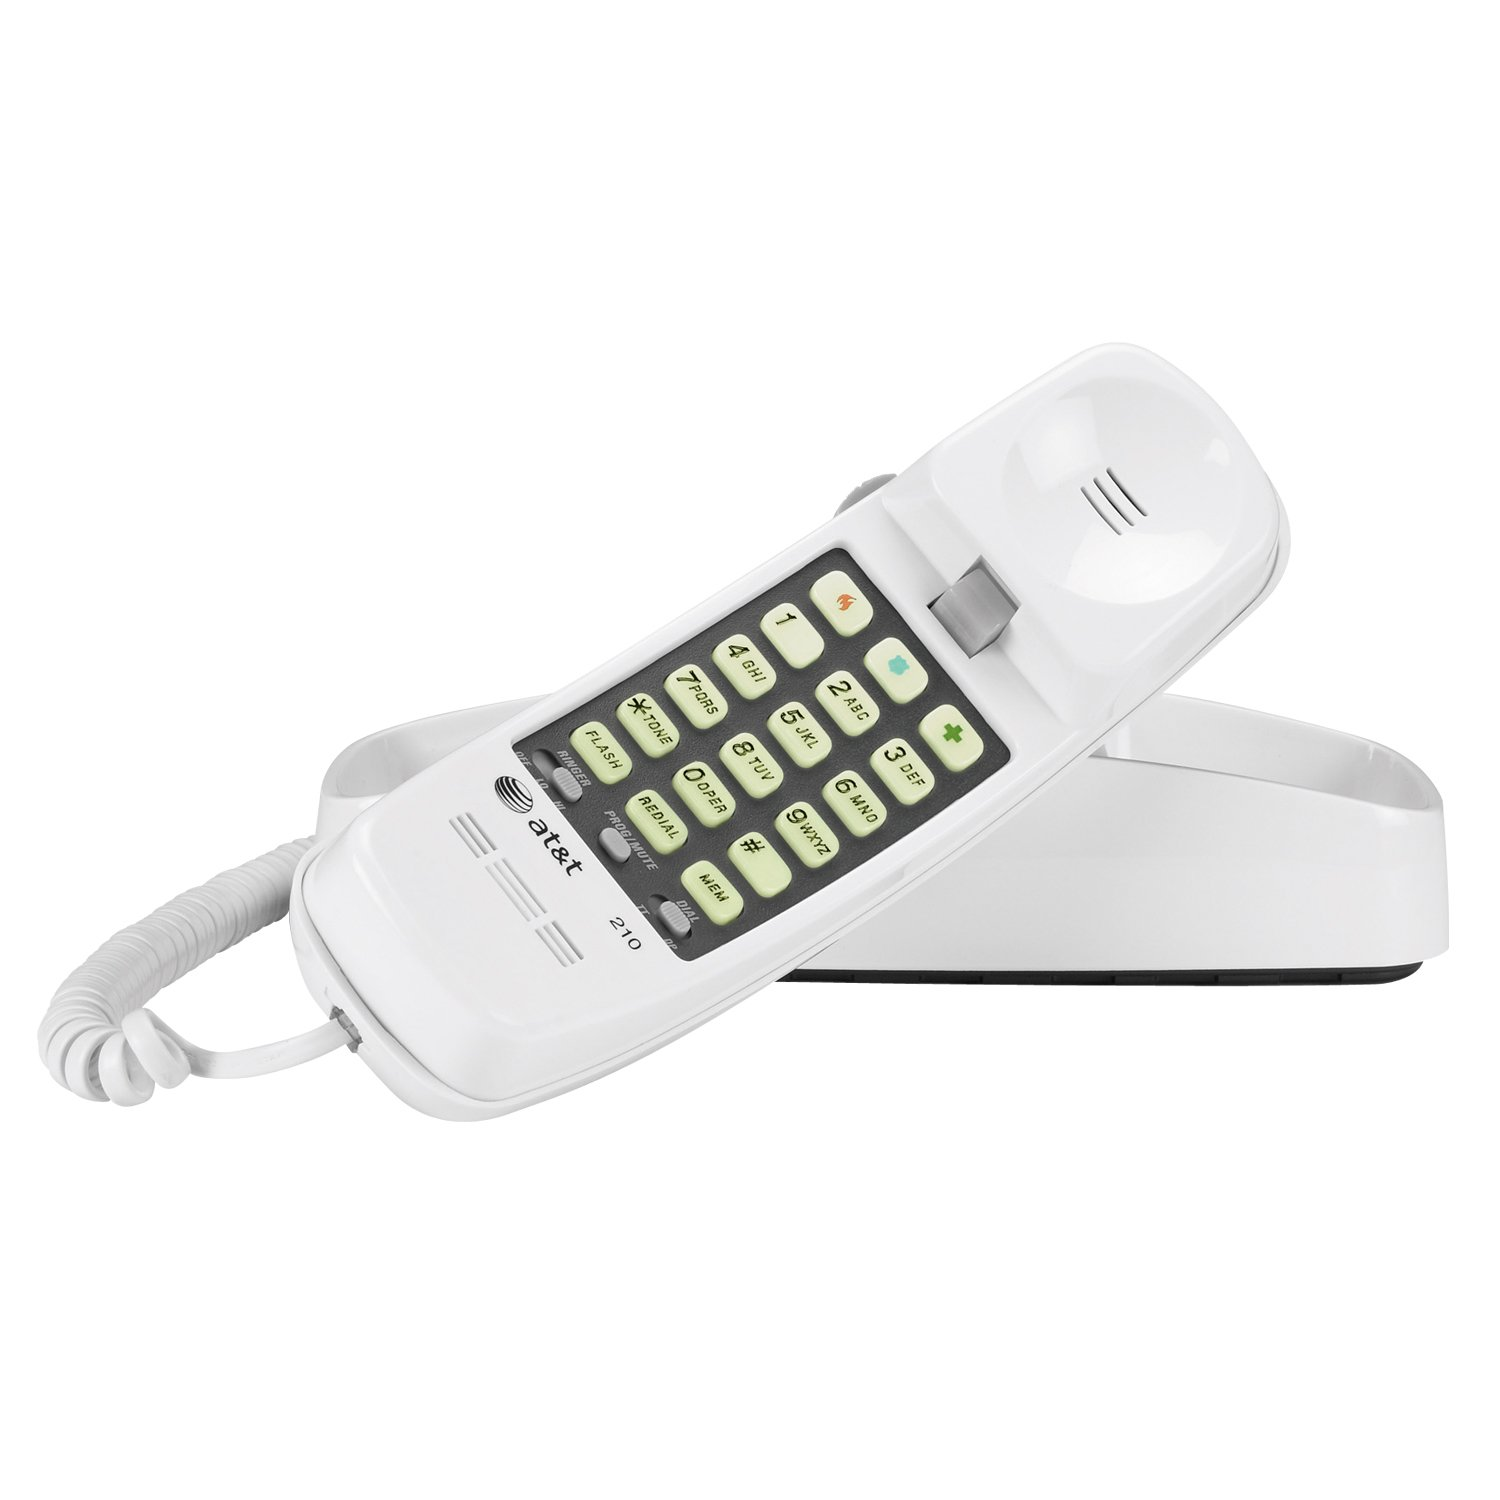 B000050FZP Advanced American Telephones 210WH AT&T 210M Basic Trimline Corded Phone, No AC Power Required, Wall-Mountable, White 610brW3Dn7L